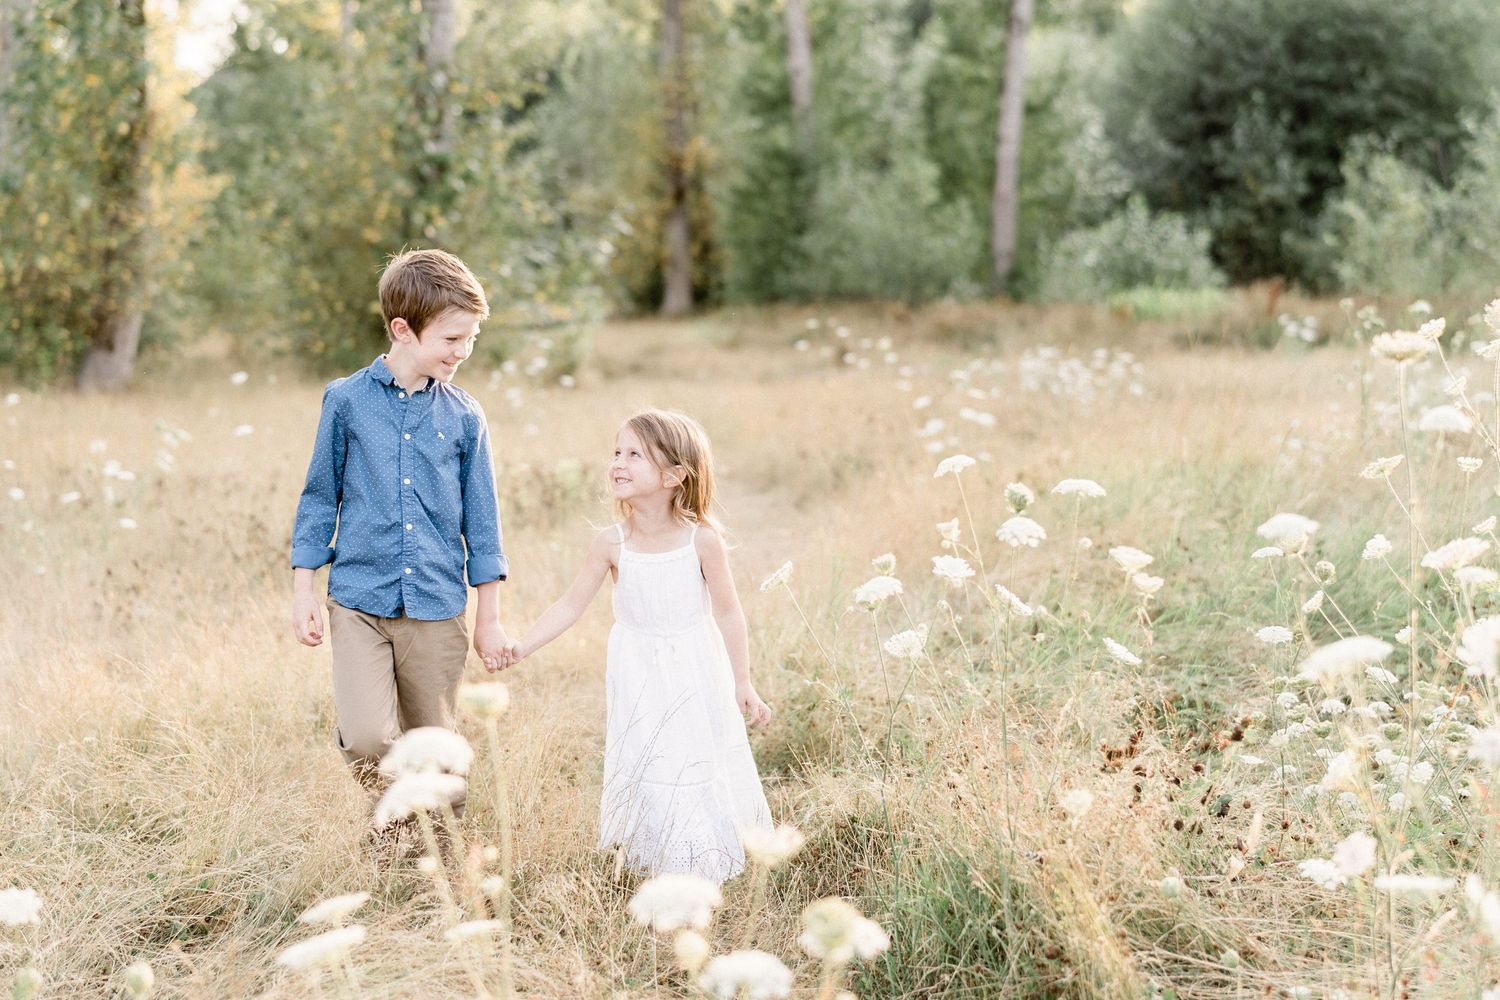 Brother and sister walking and smling at each other in a field of flowers